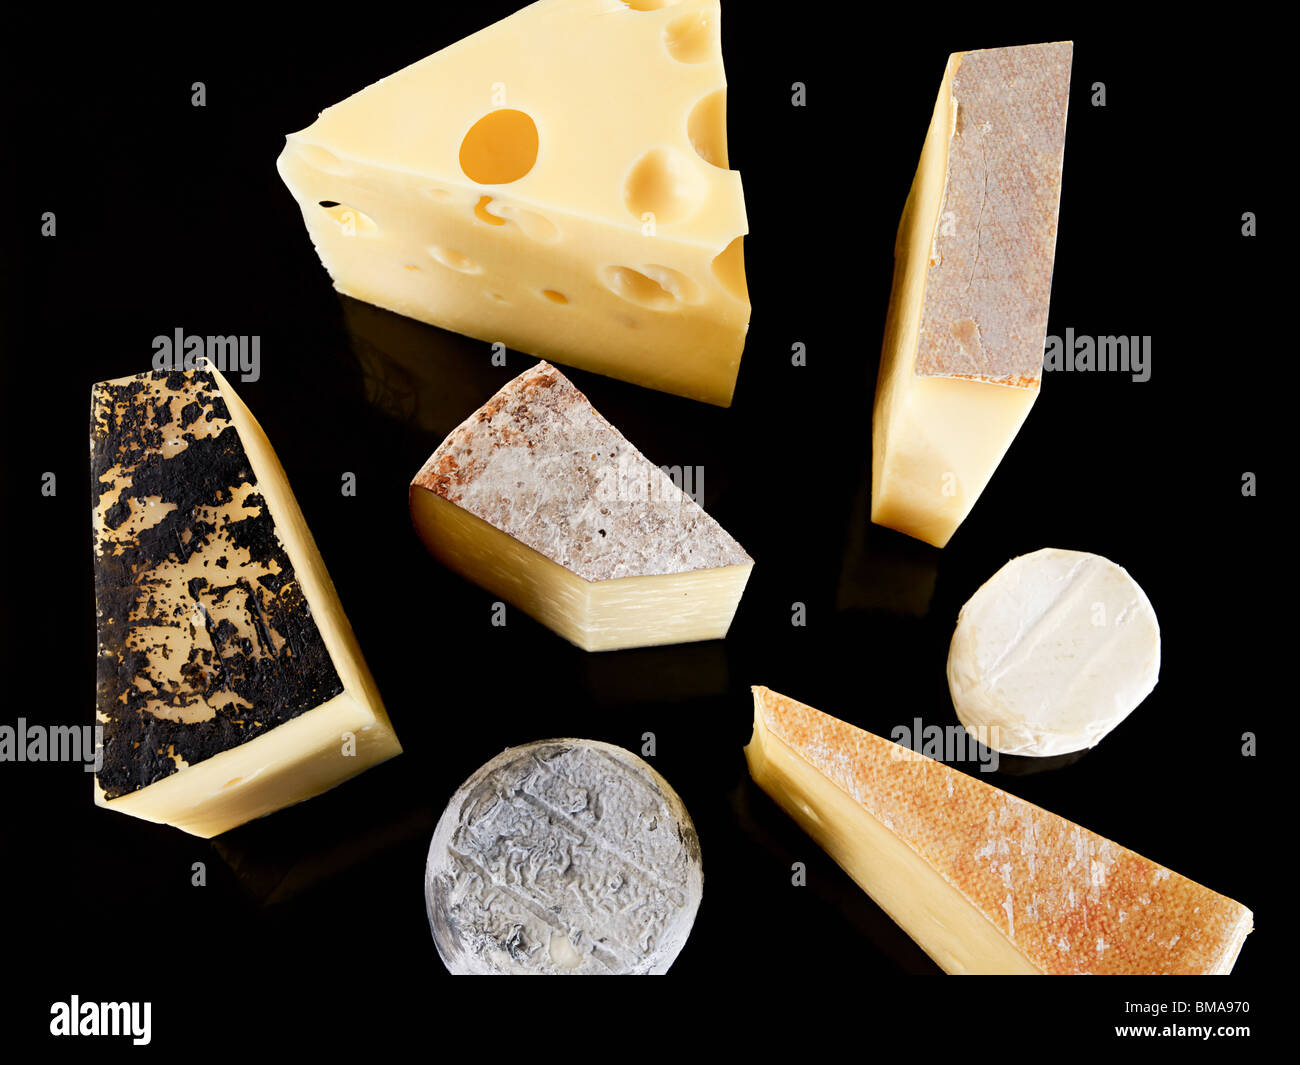 Selection of cheeses - Stock Image